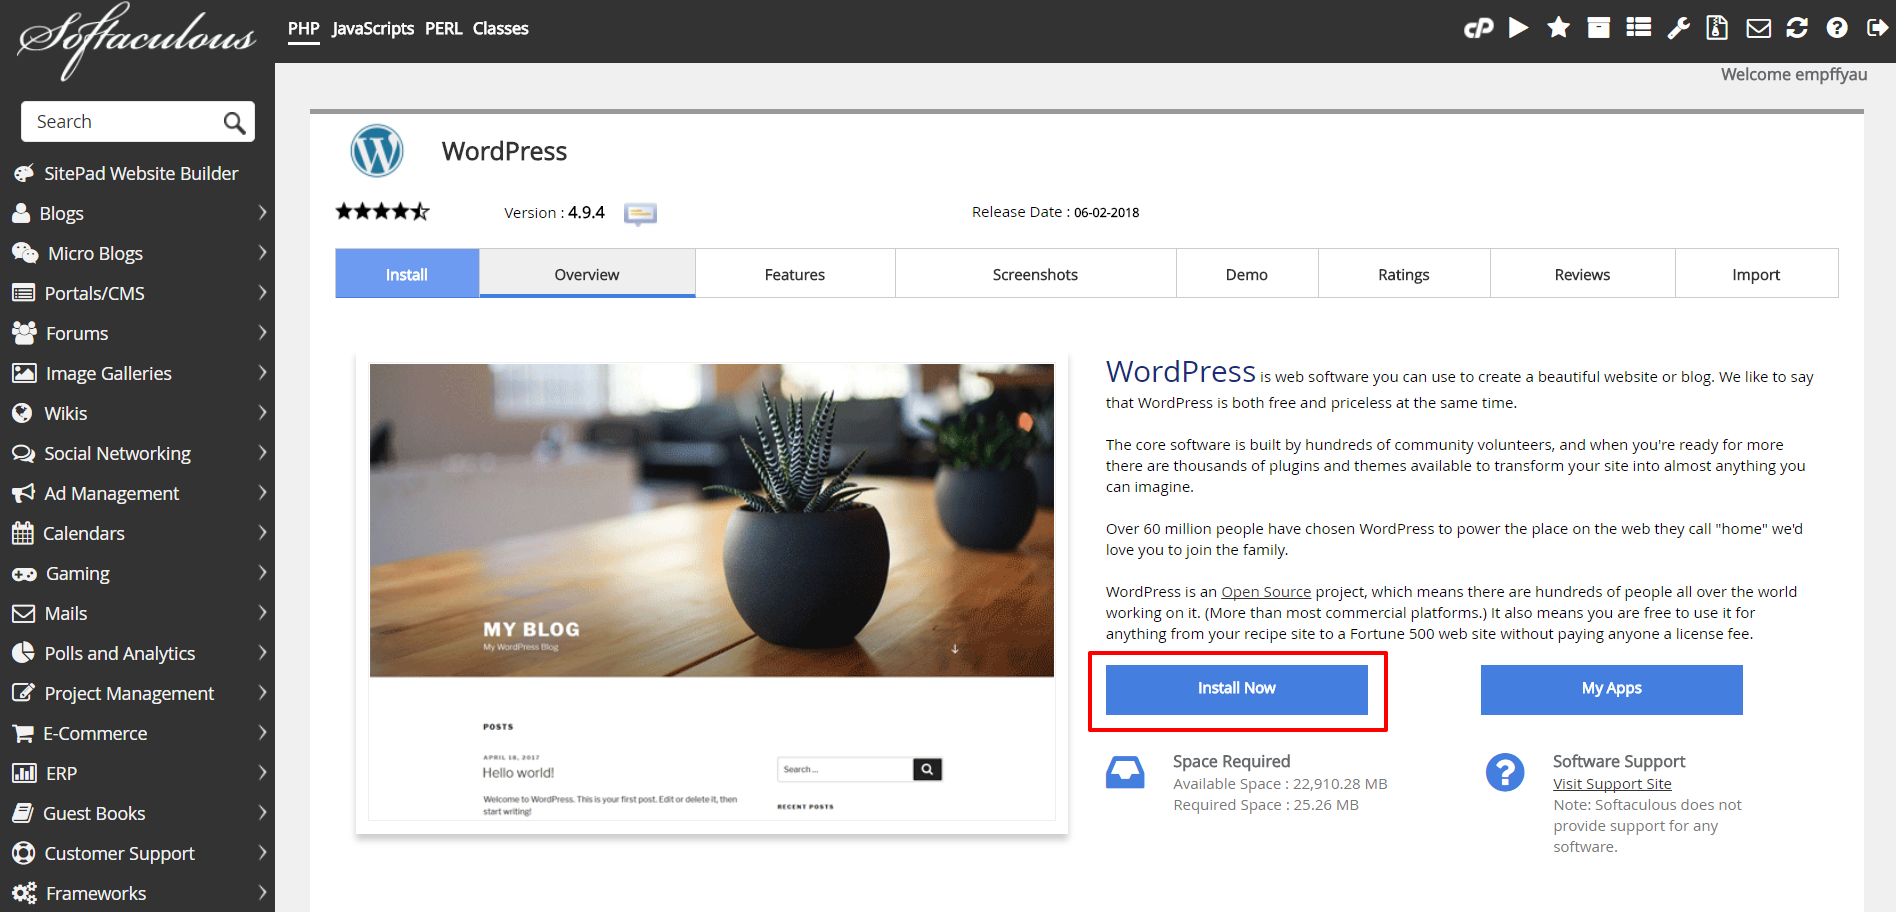 WordPress in Softaculous | HollyPryce.com